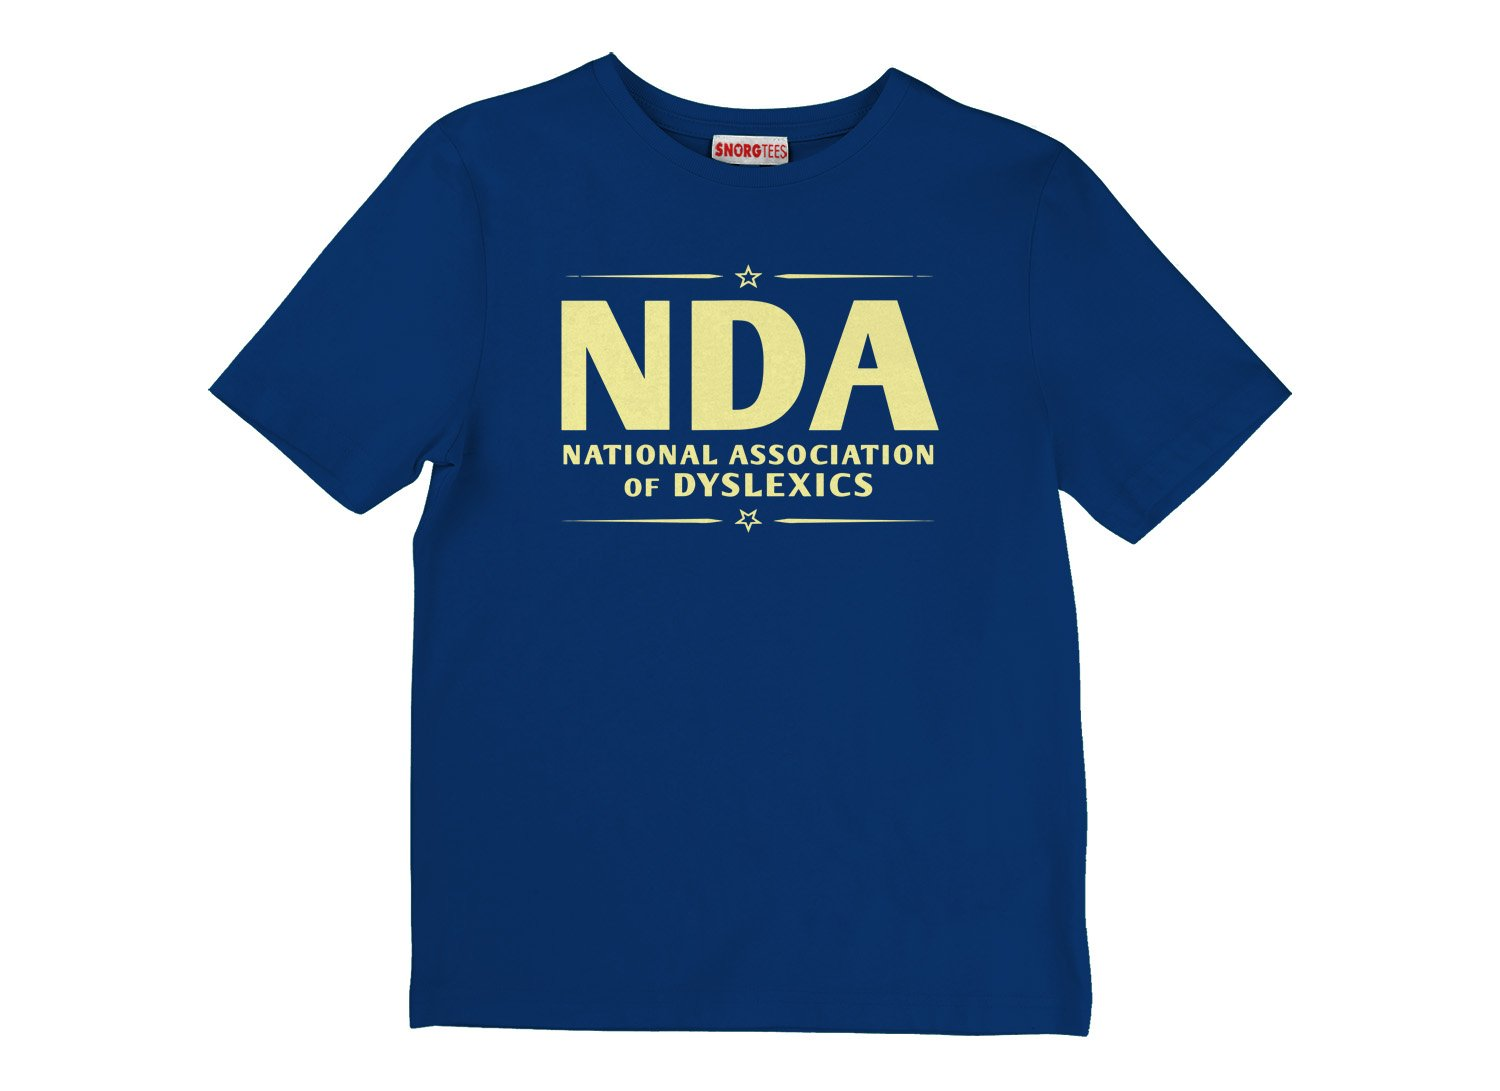 National Association of Dyslexics on Kids T-Shirt